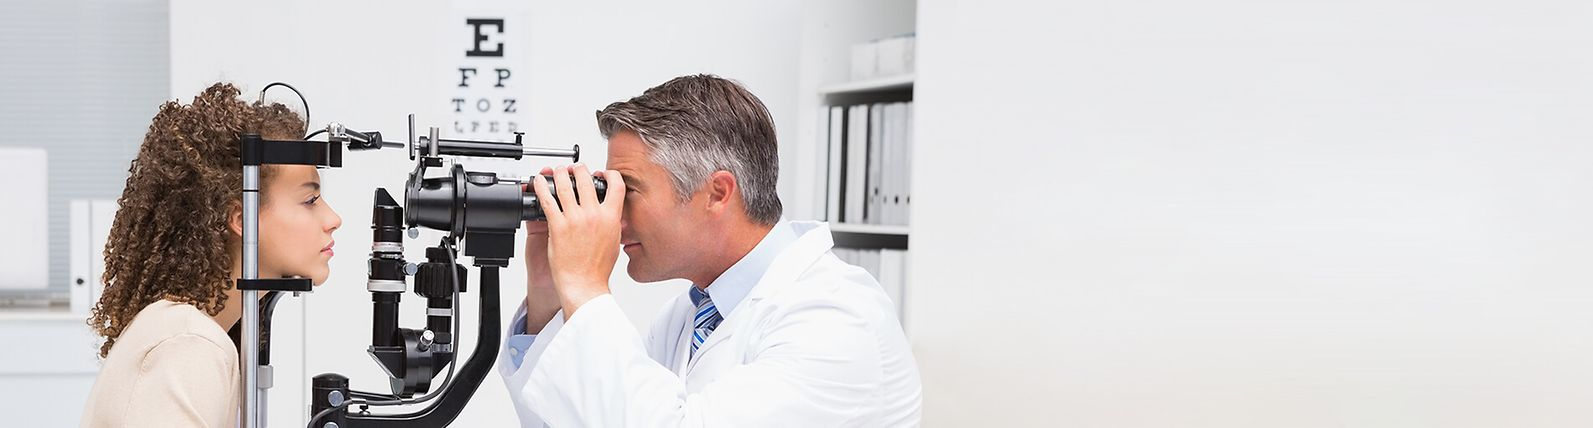 An eye doctor examines a patient's eyes